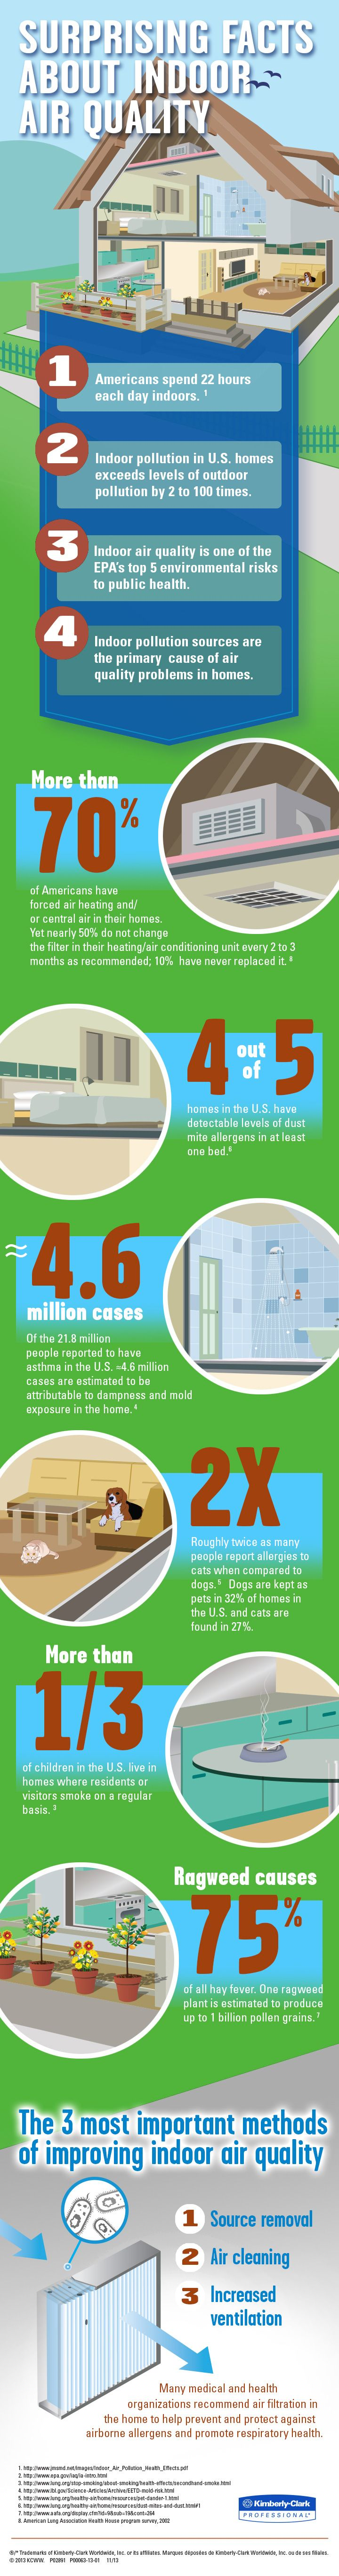 11 surprising facts about indoor air quality [Infographic